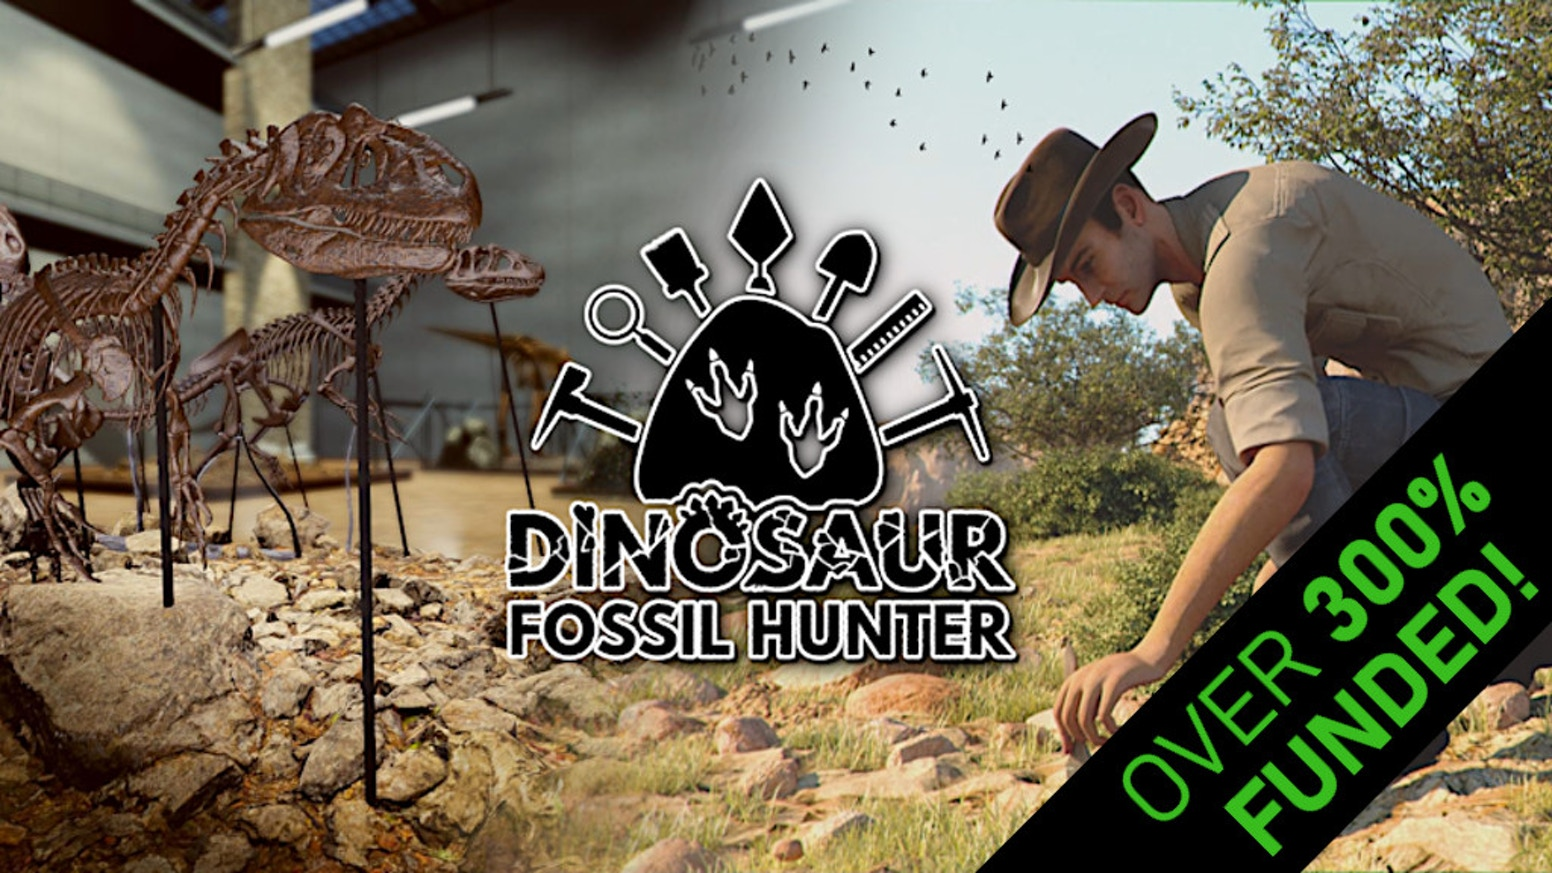 Become a paleontologist, discover ancient fossils, complete dinosaur skeletons and create your own unique museum.